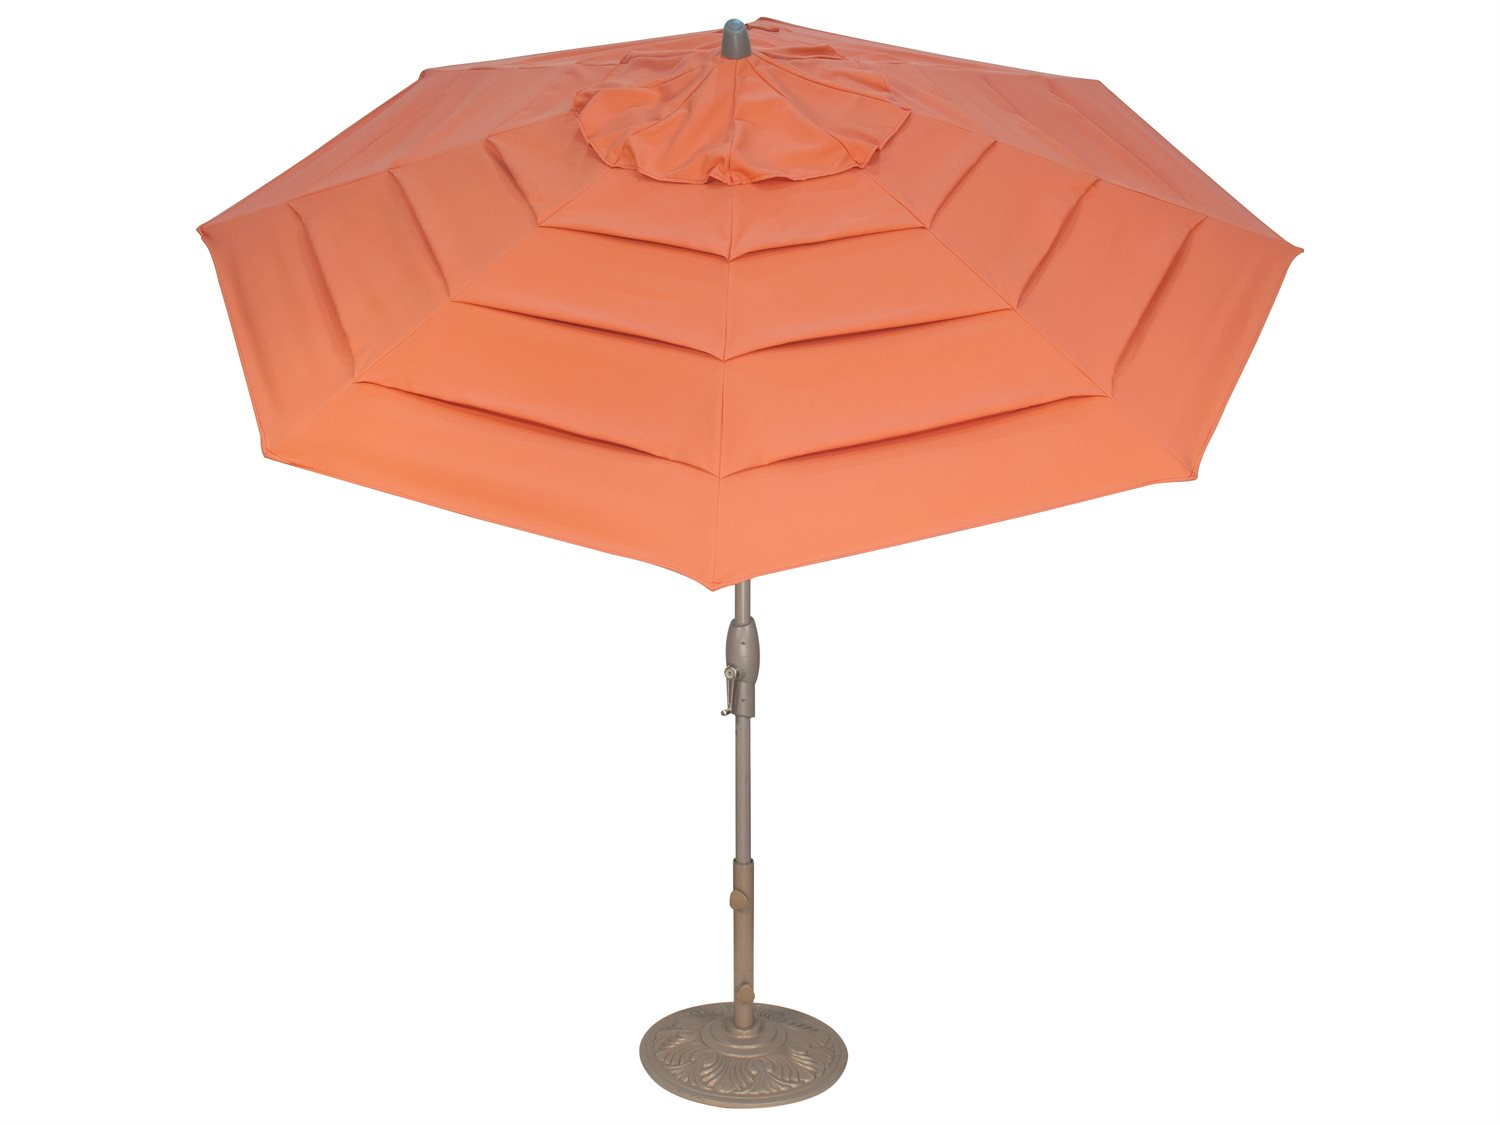 Treasure garden milan 9 foot crank lift auto tilt umbrella for Patio table umbrella 6 foot